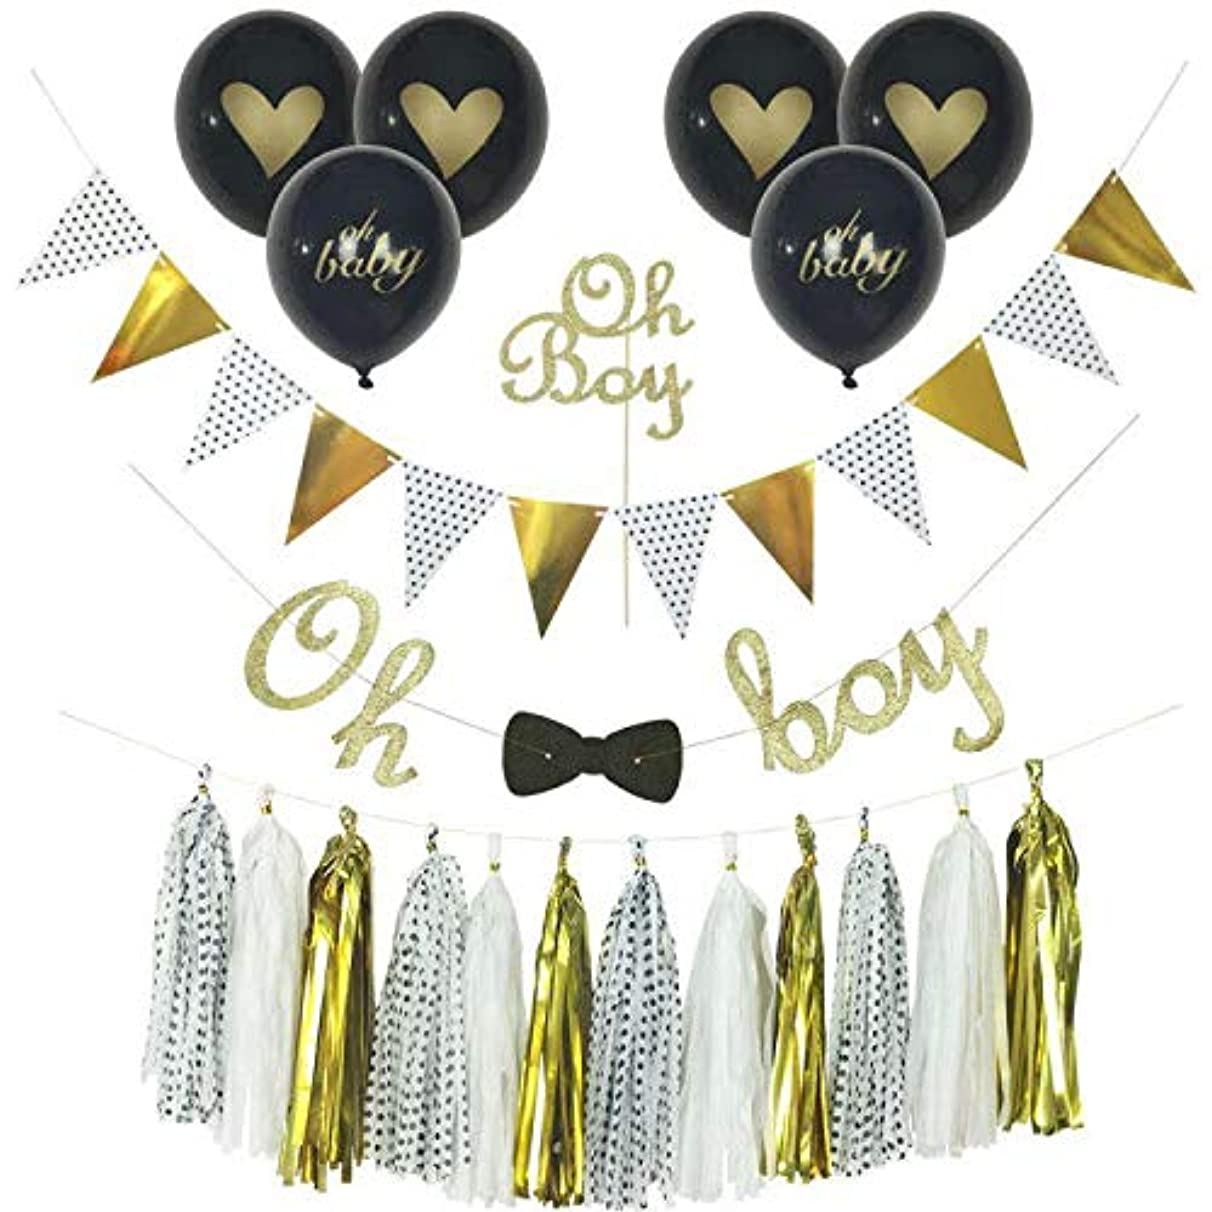 baby boy shower decorations, Little Man Baby Shower, Oh Boy Banner with Bow Tie, Baby is a Brewing, Oh Boy Cake Topper, Oh Baby Balloons, Gold and Black Glitter, Tassels, 1st Birthday boy set